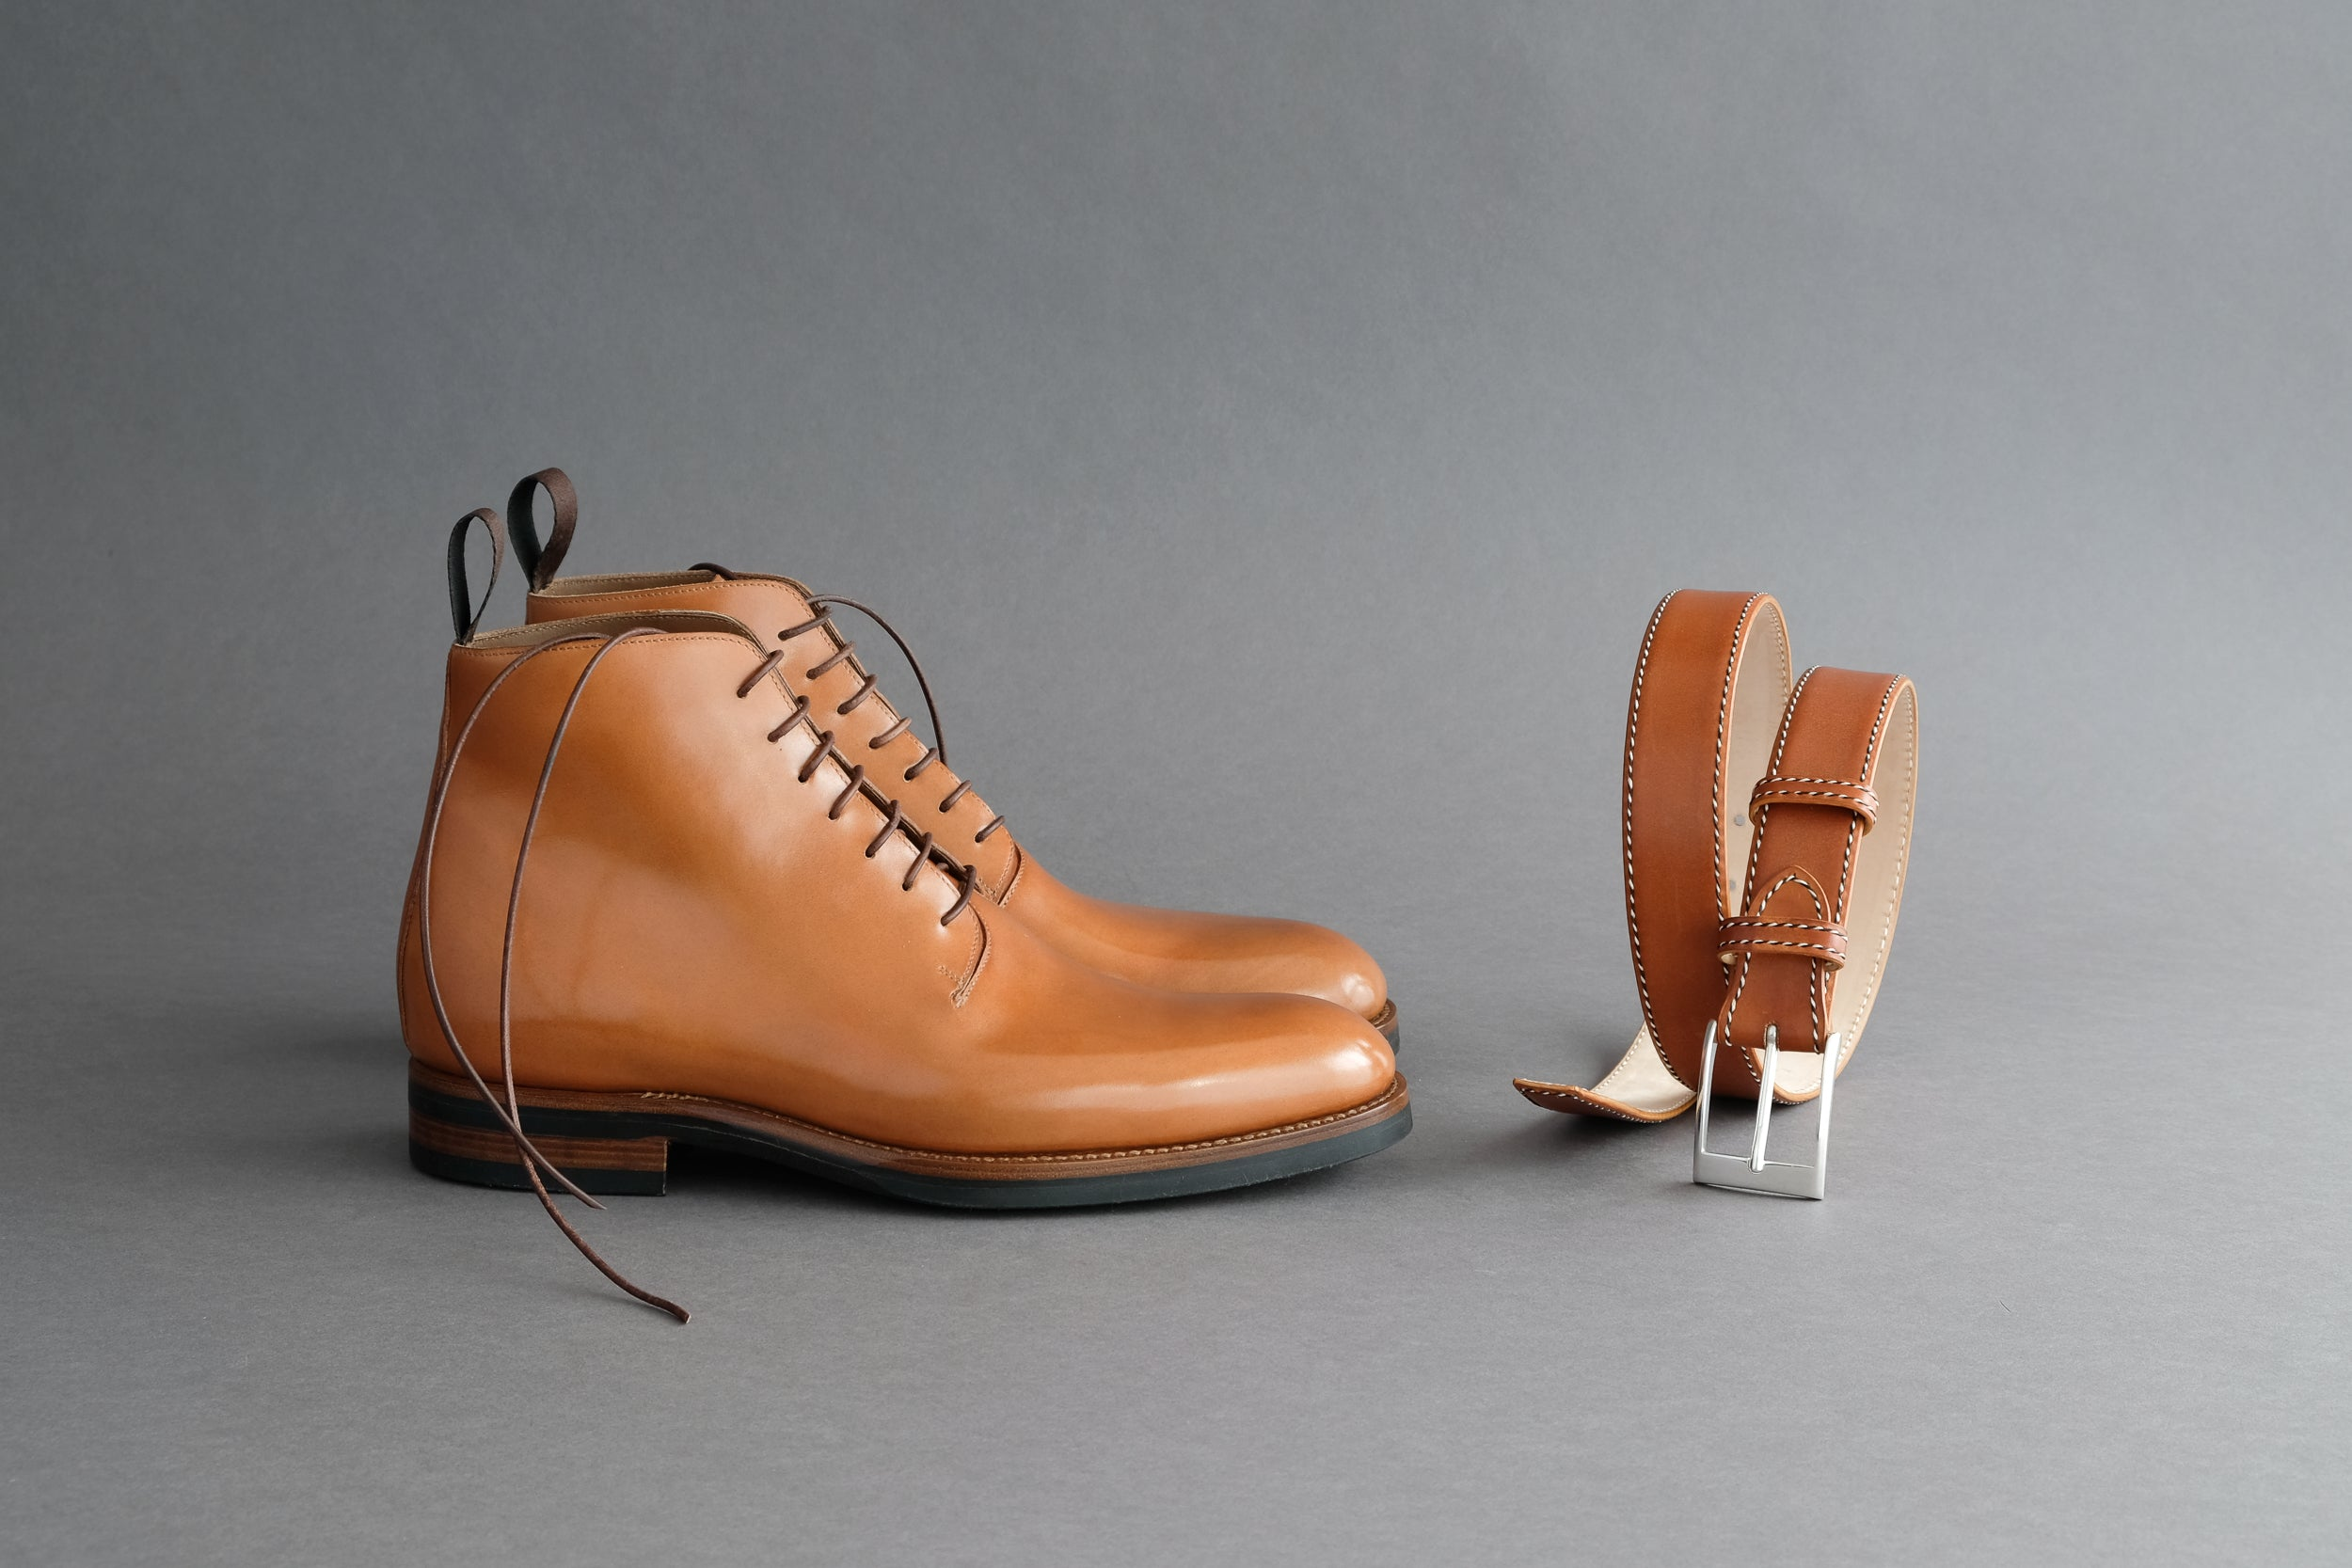 Zonkey Boot hand welted wholecut derby boots with matching belt